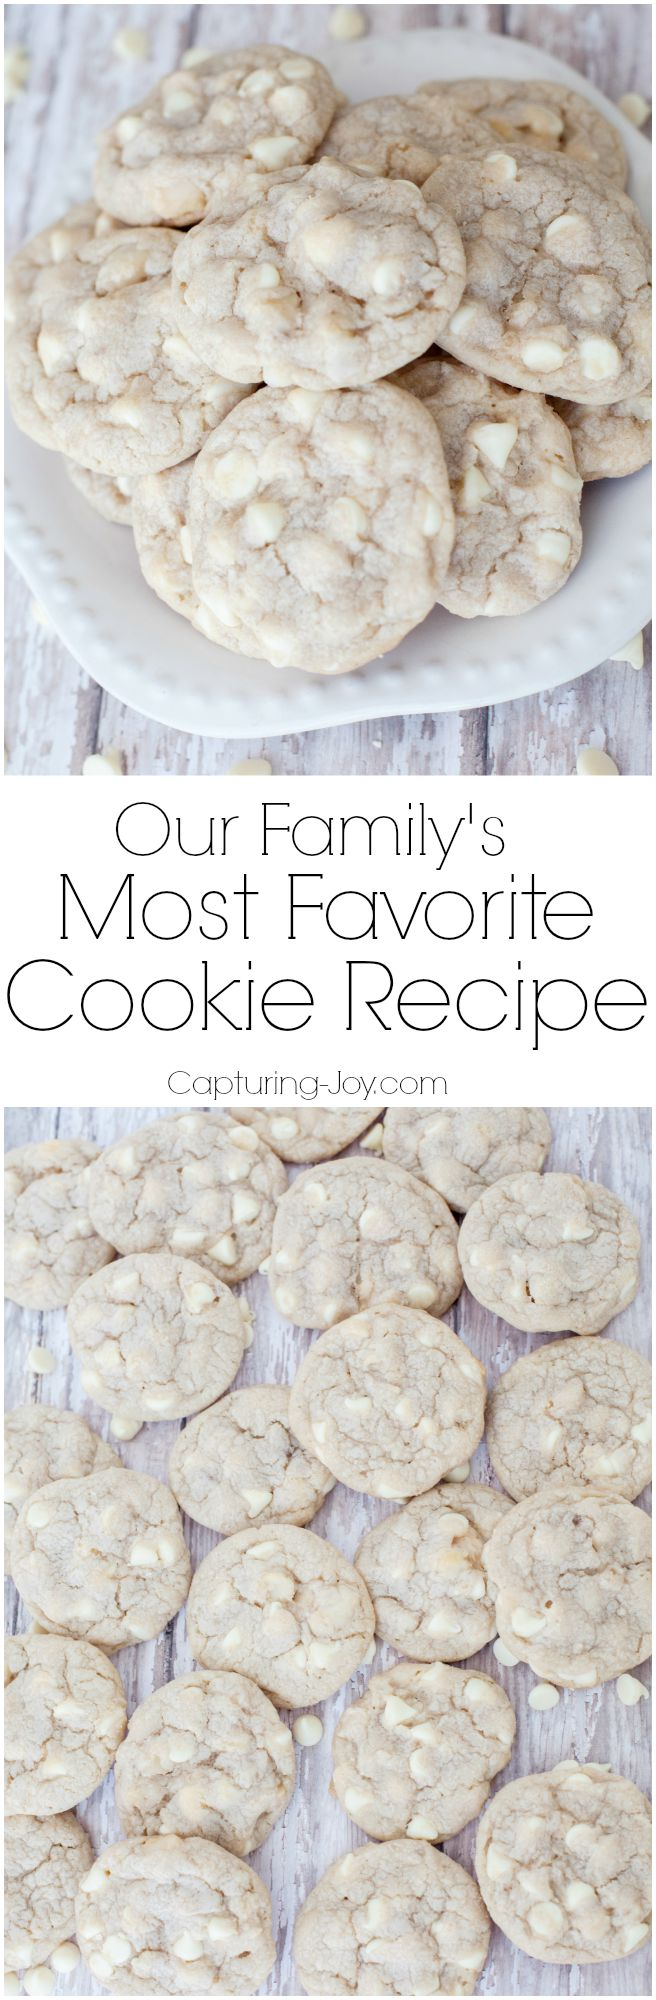 Our-Familys-Most-Favorite-Cookie-Recipe